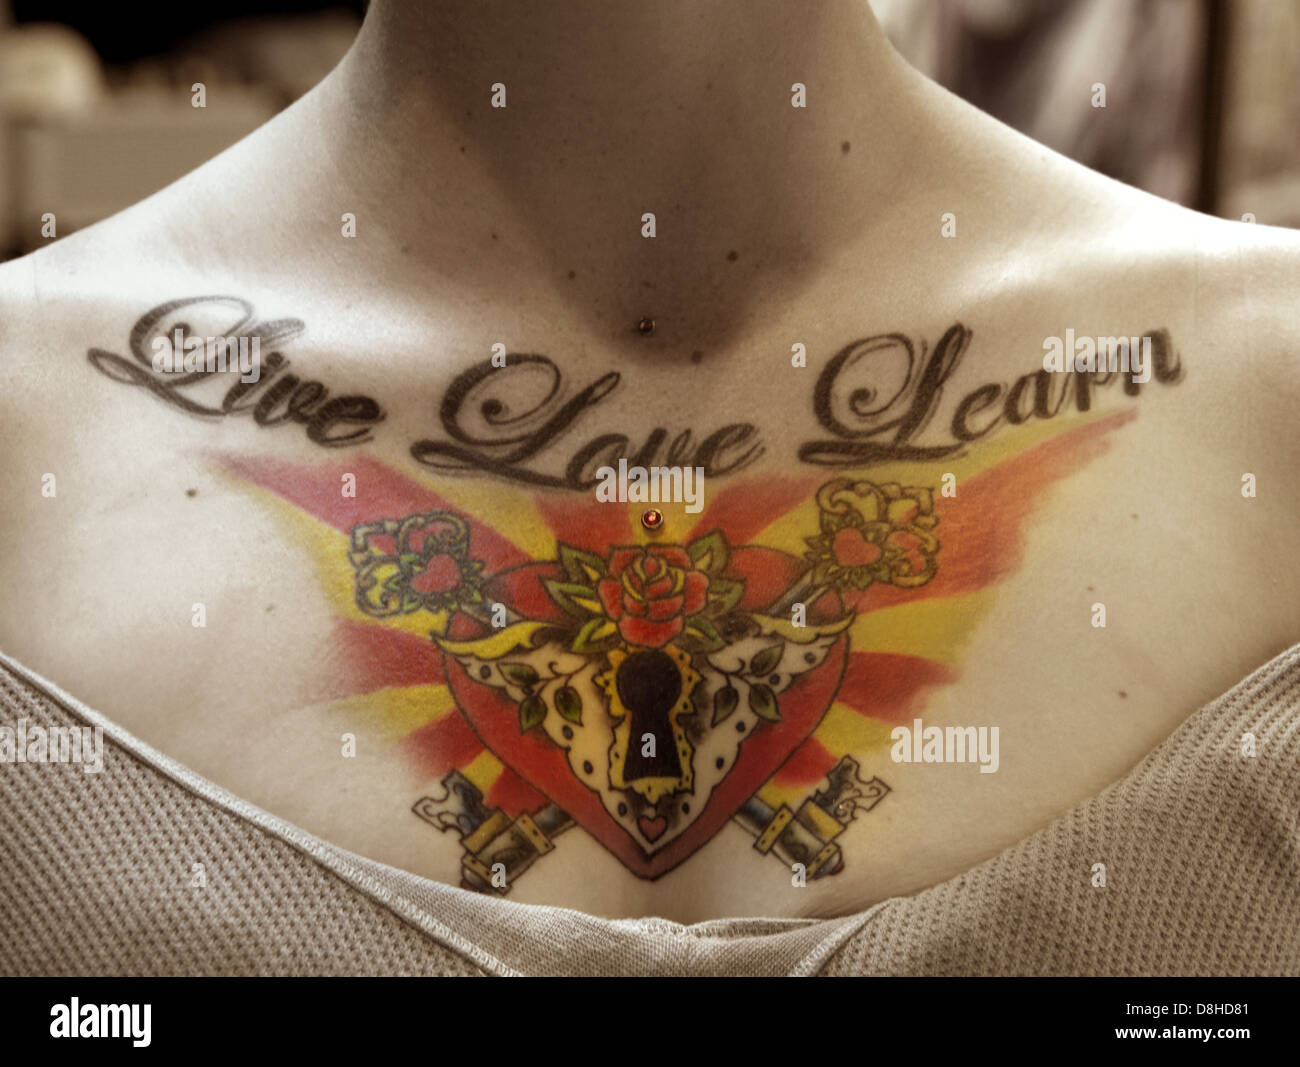 Live Love Learn Tattoo with a keyhole heart on a womans chest - Stock Image